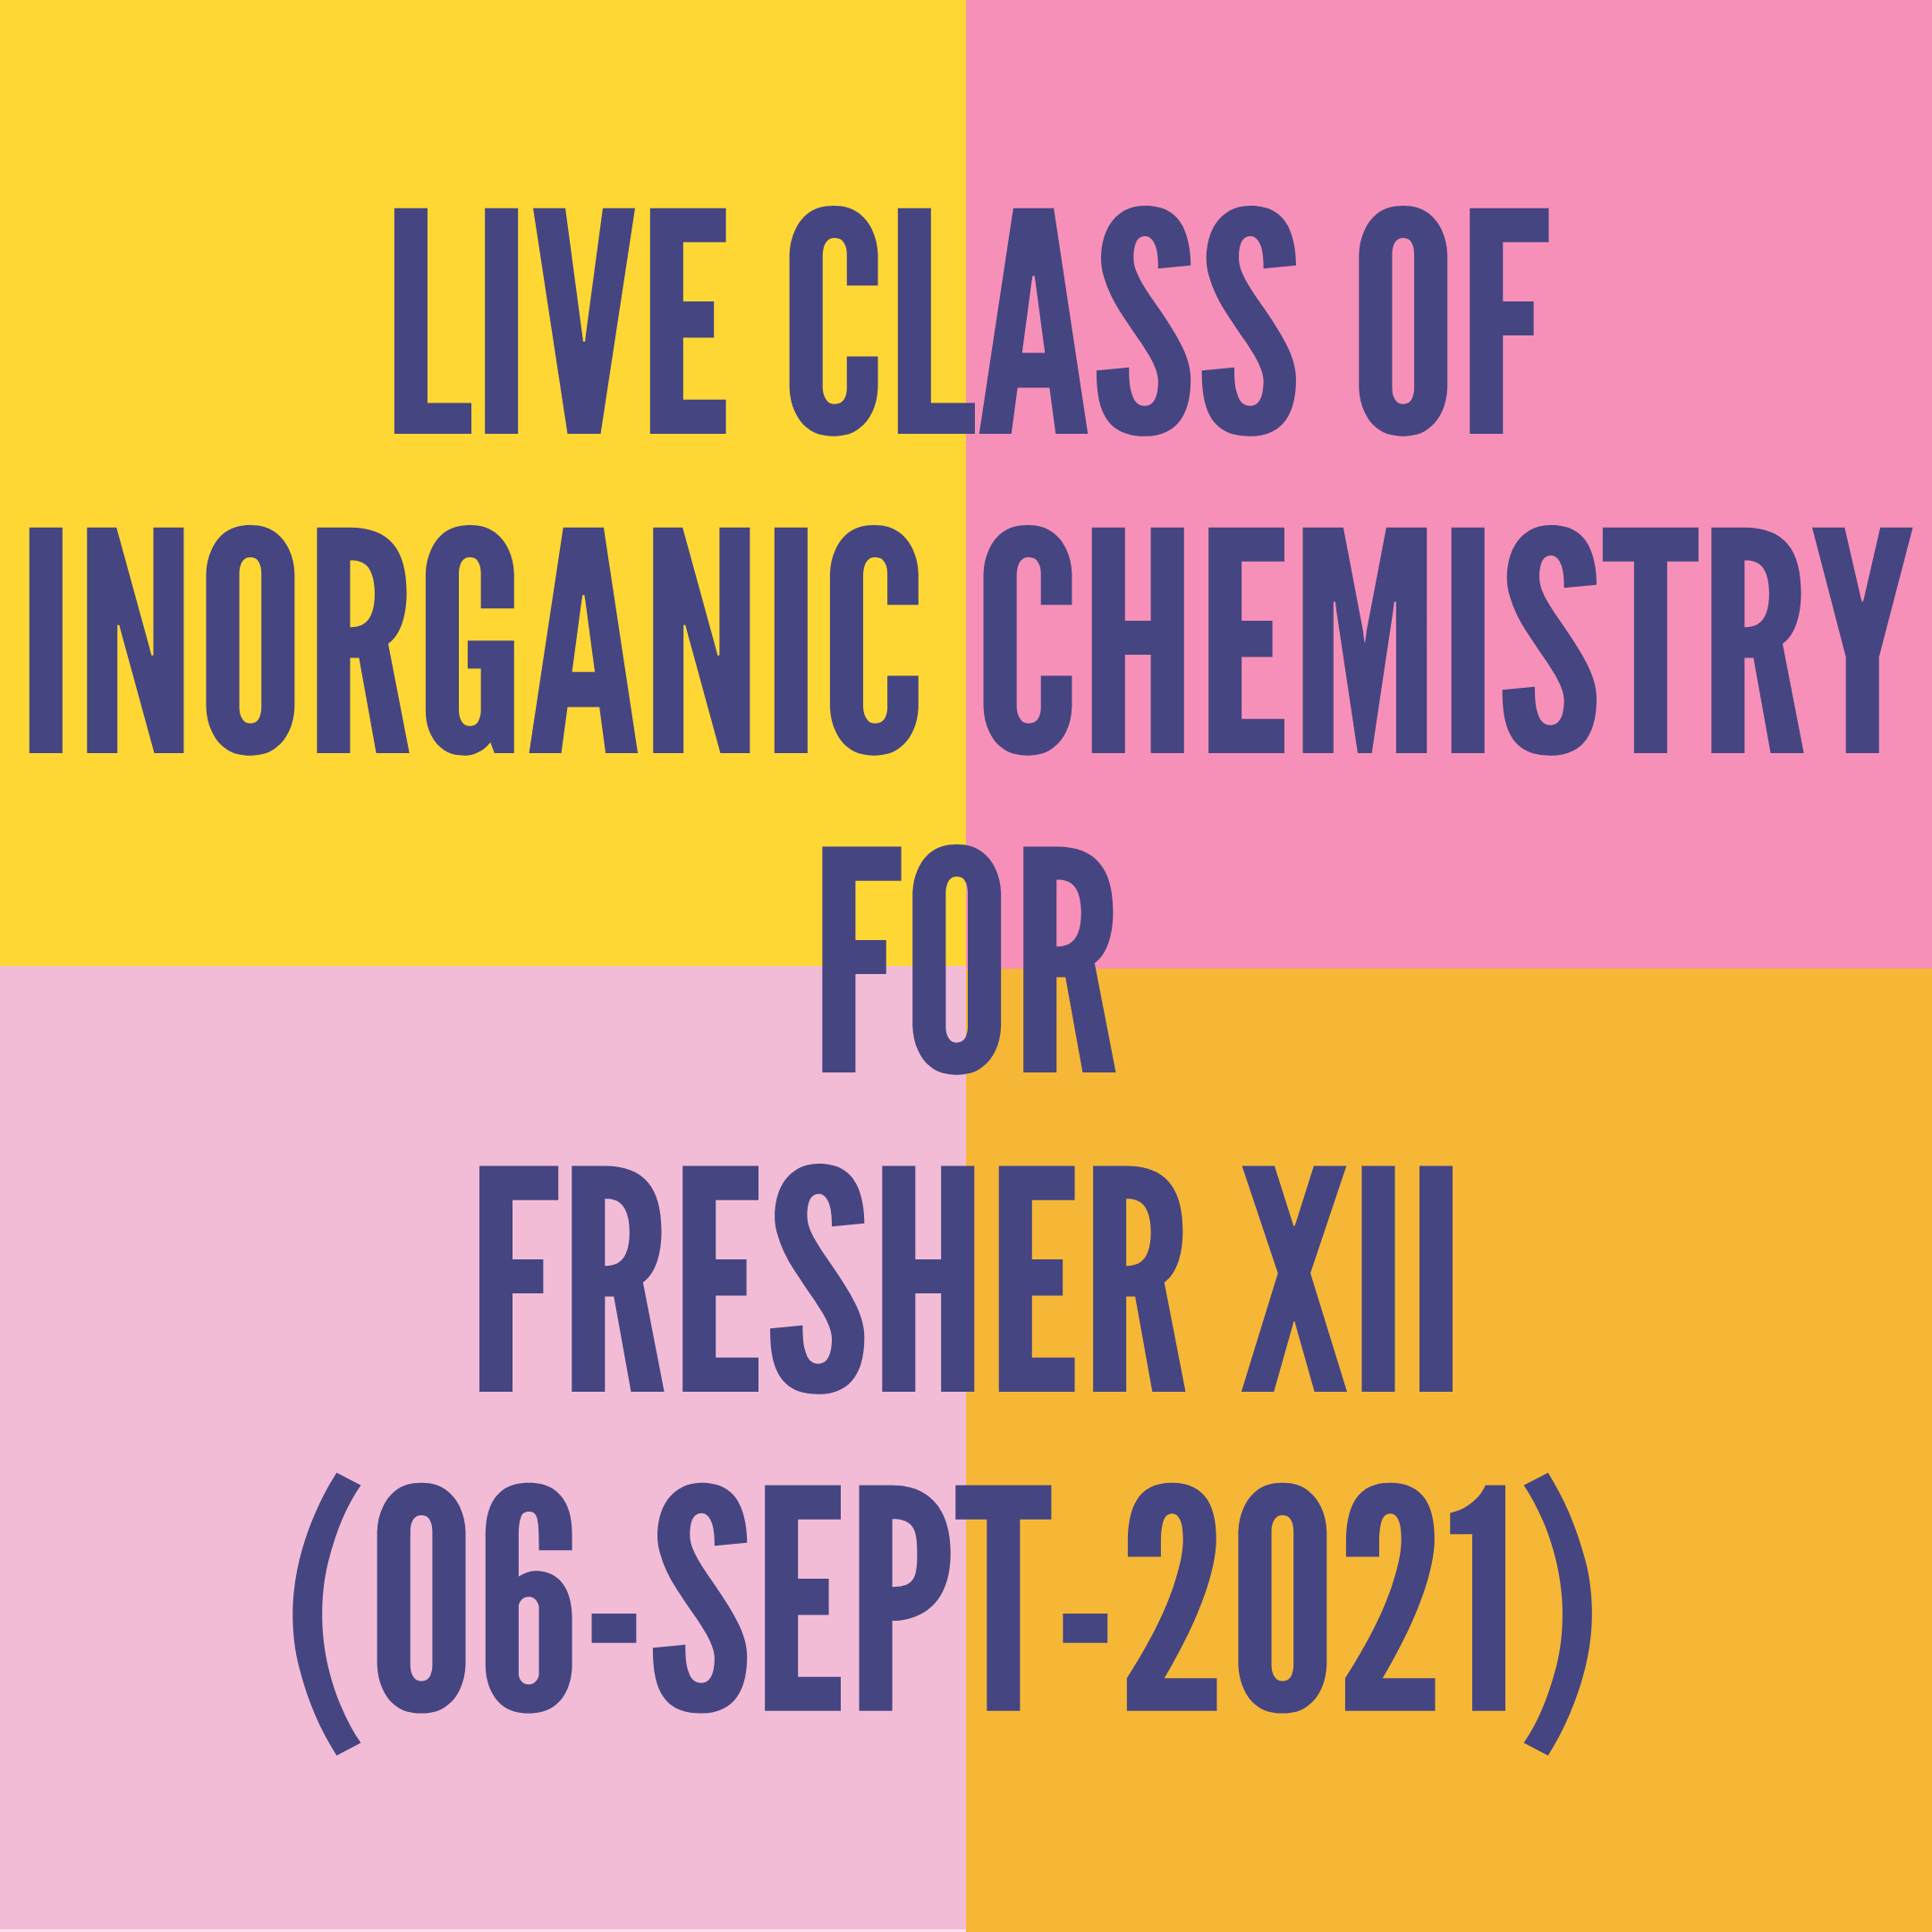 LIVE CLASS OF INORGANIC CHEMISTRY FOR FRESHER XII (06-SEPT-2021) CO-ORDINATION COMPOUND